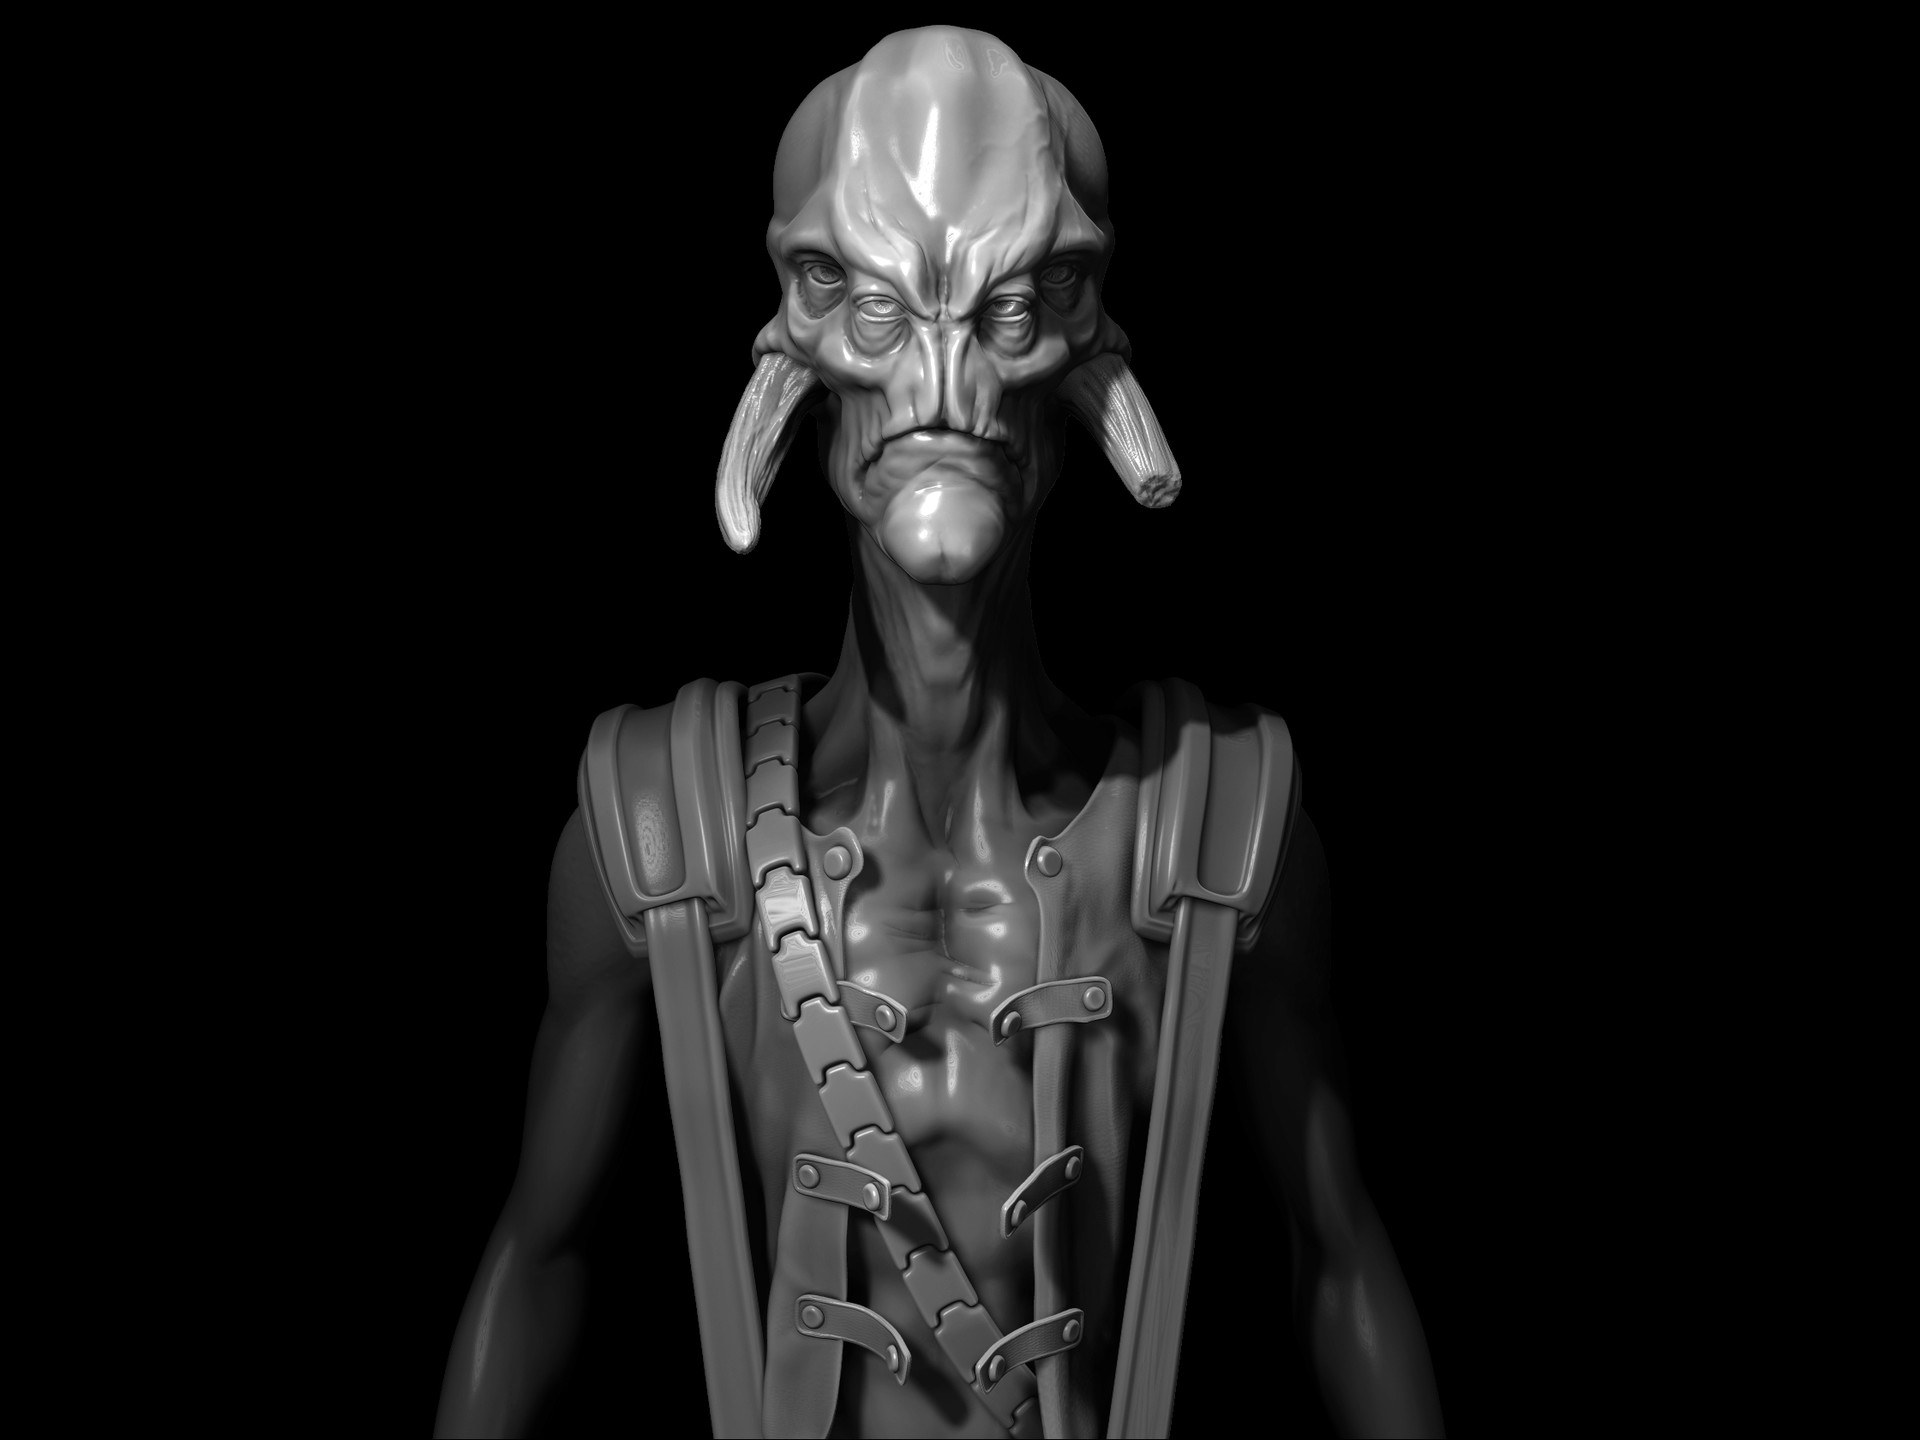 Fred howard alienpirate zbrush